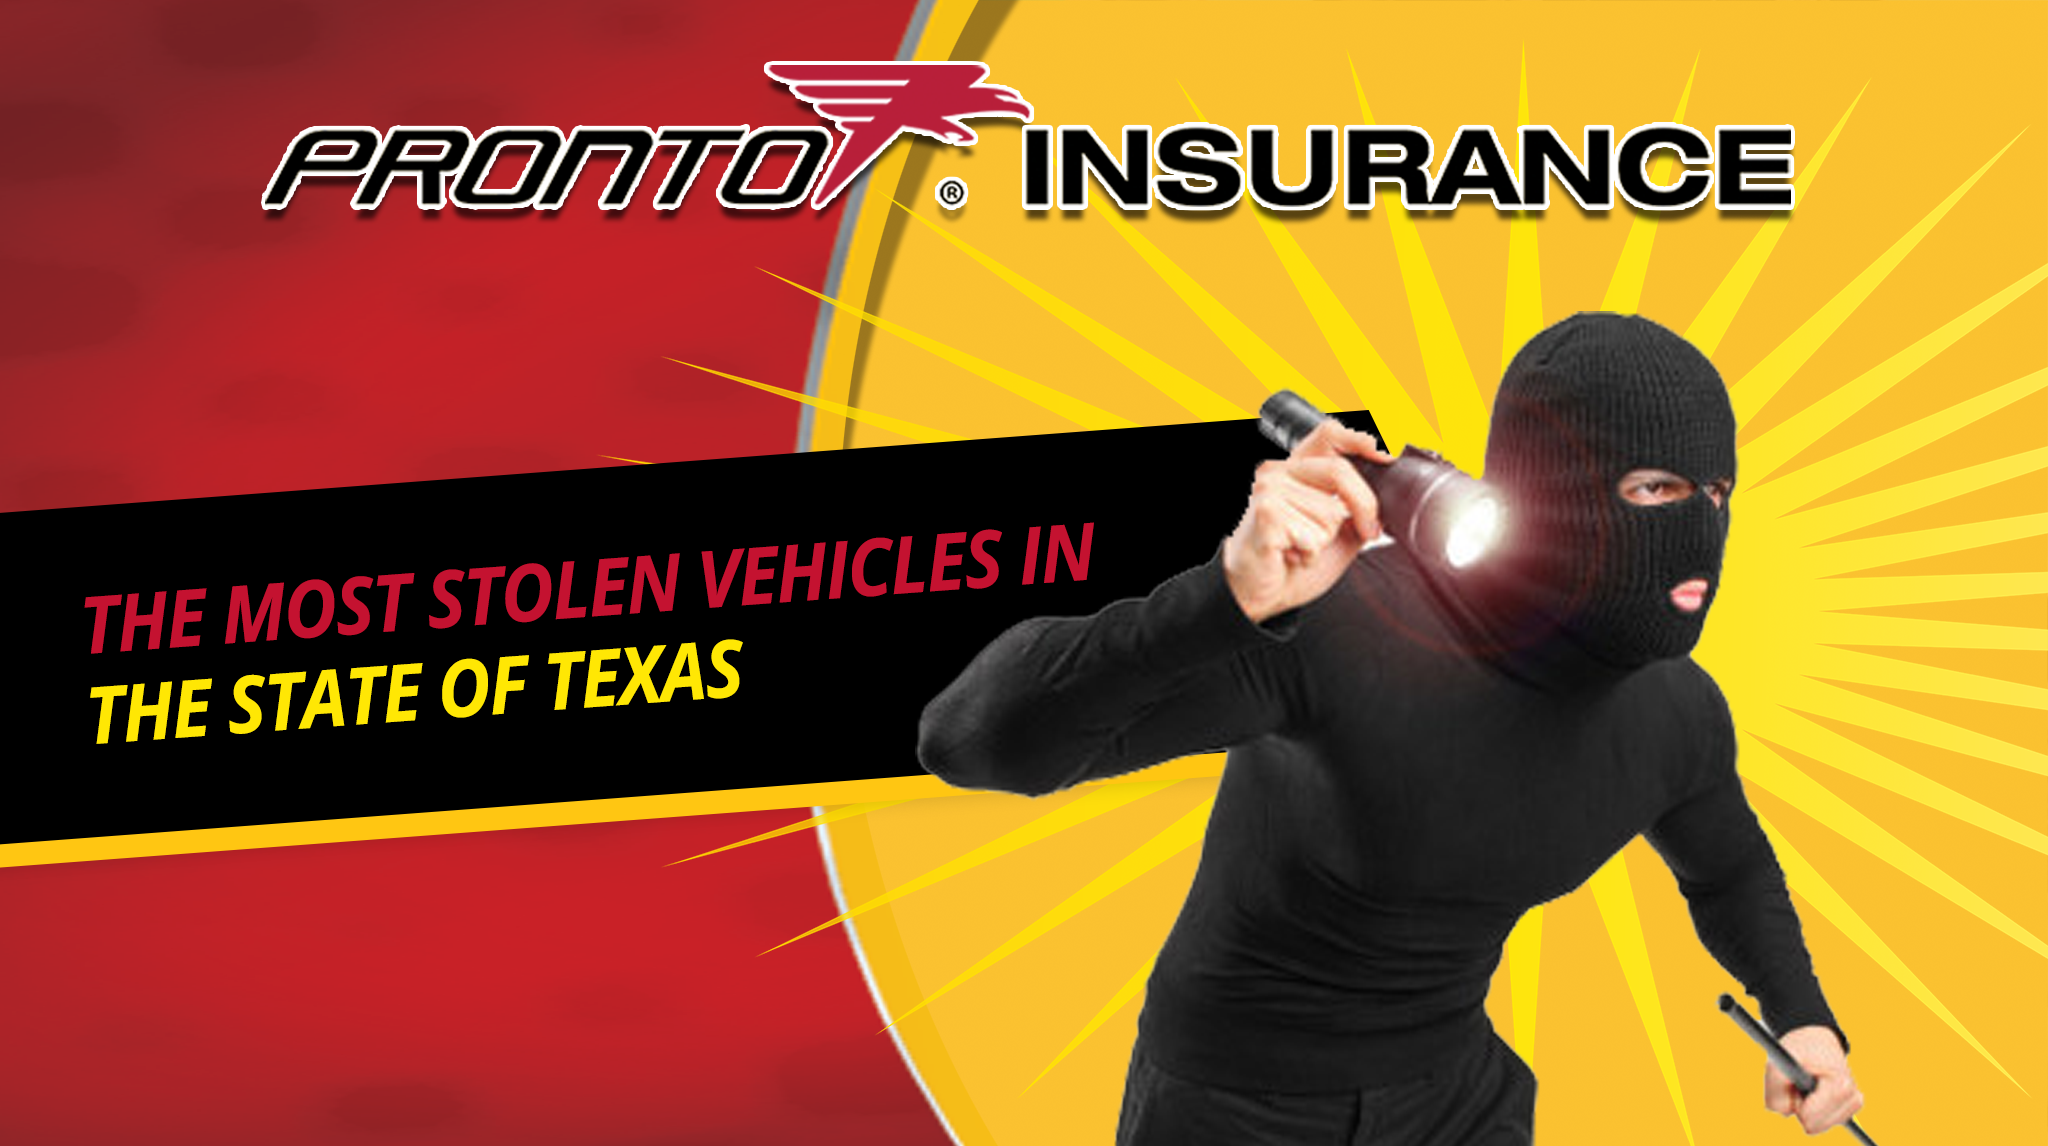 The Most Stolen Vehicles in the State of Texas